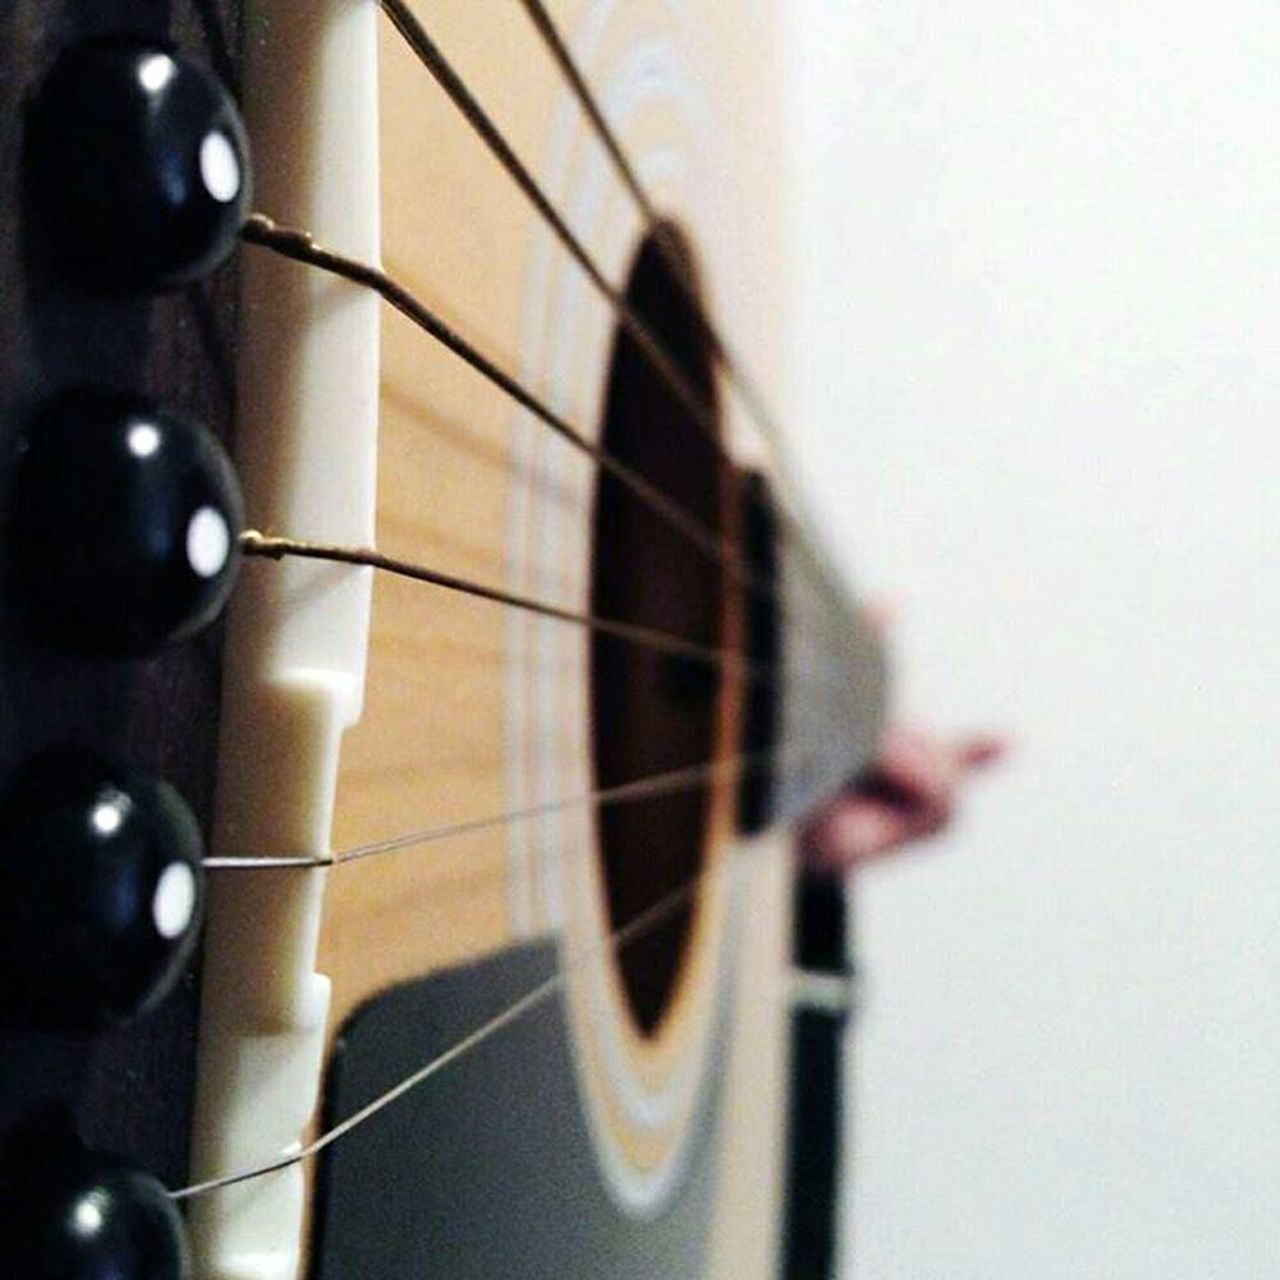 Guitar Playing The Guitar Shaping The Future. Together. Music Is My Life From My Point Of View Living BoldMusic Is Life EyeEm Music Lover What Does Music Look Like To You? For The Love Of Music